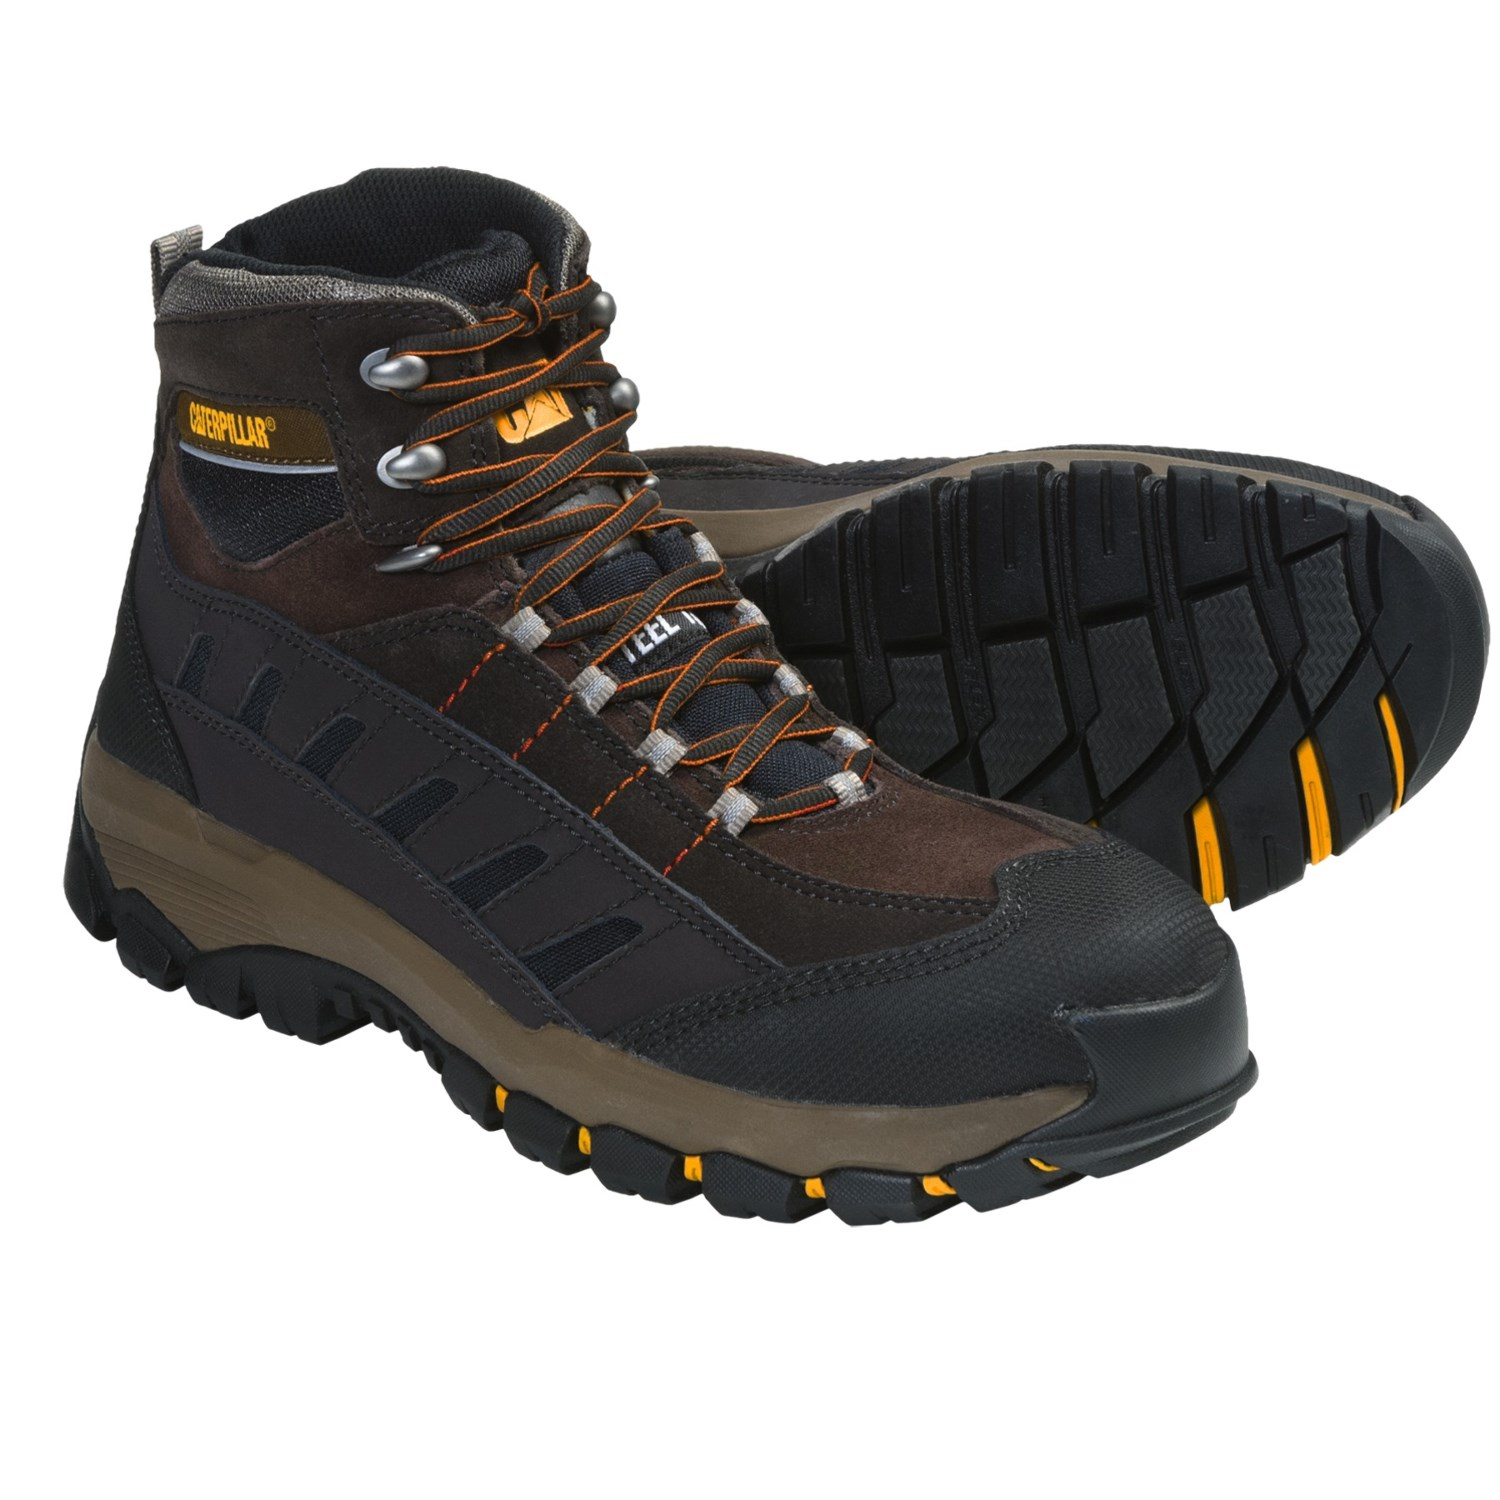 Cat Generator Boots Review